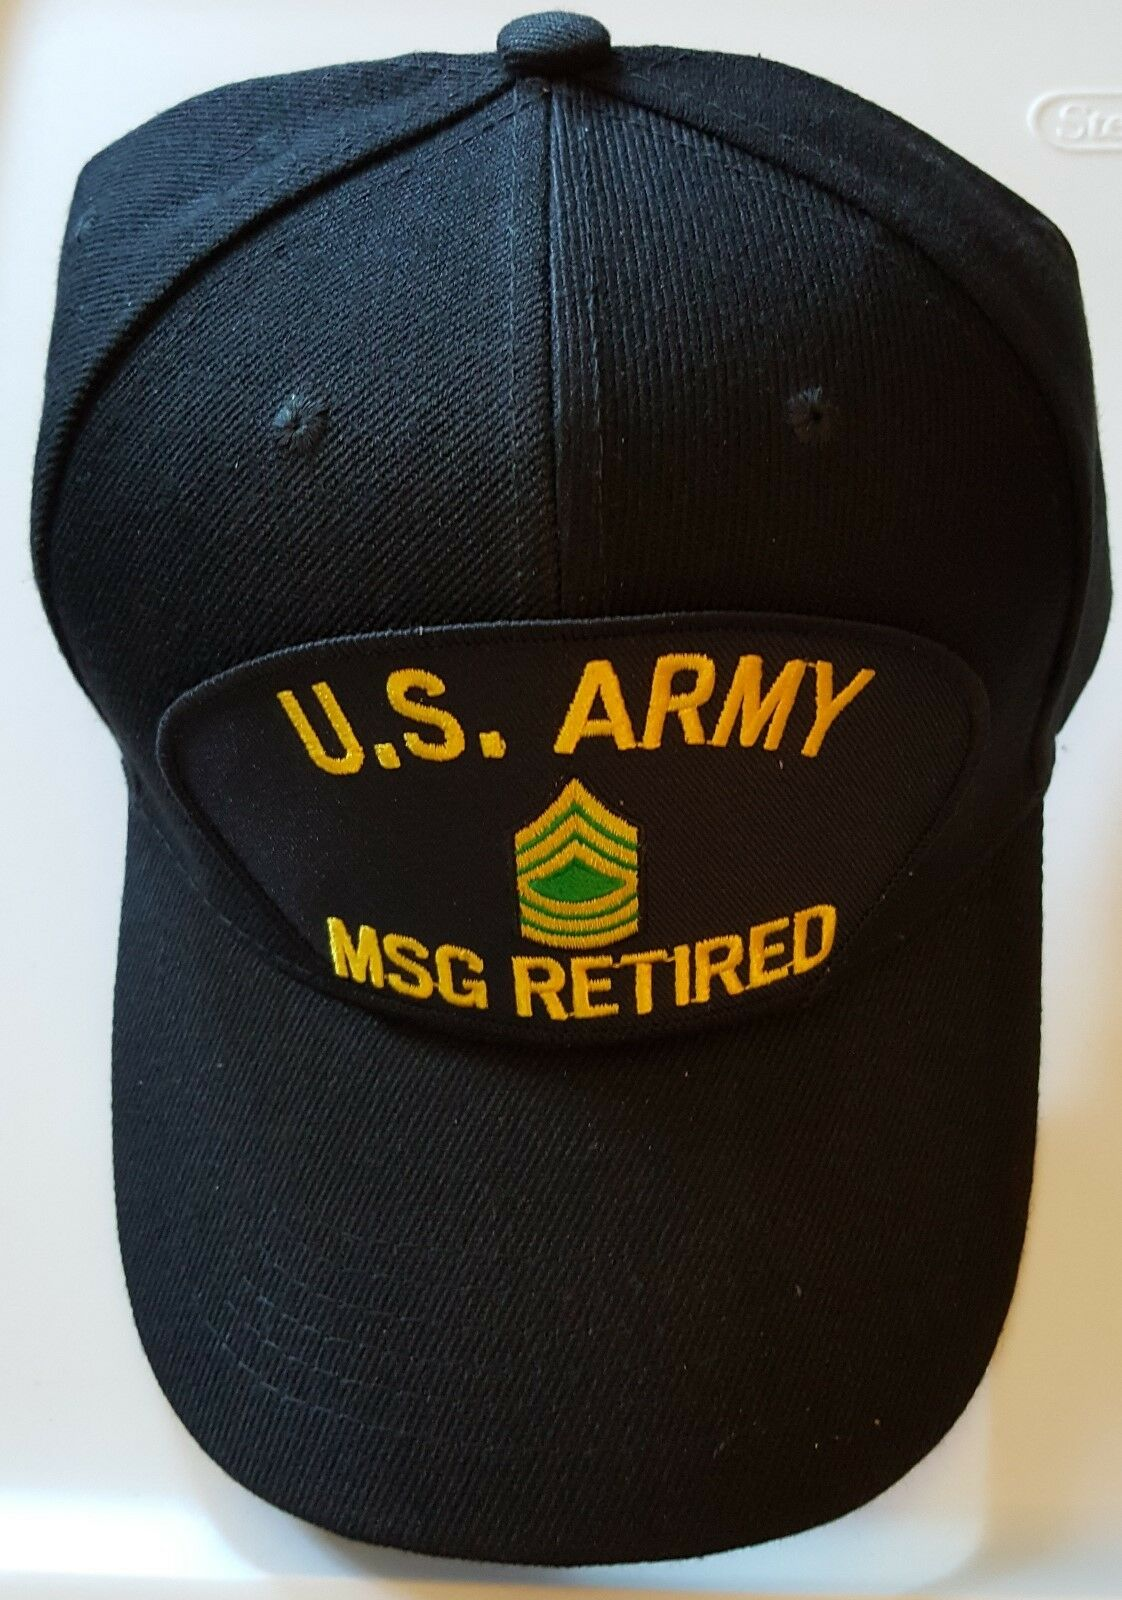 U.S. ARMY MSG MASTER Ball SERGEANT RETIRED Military Ball MASTER Cap 9767f6